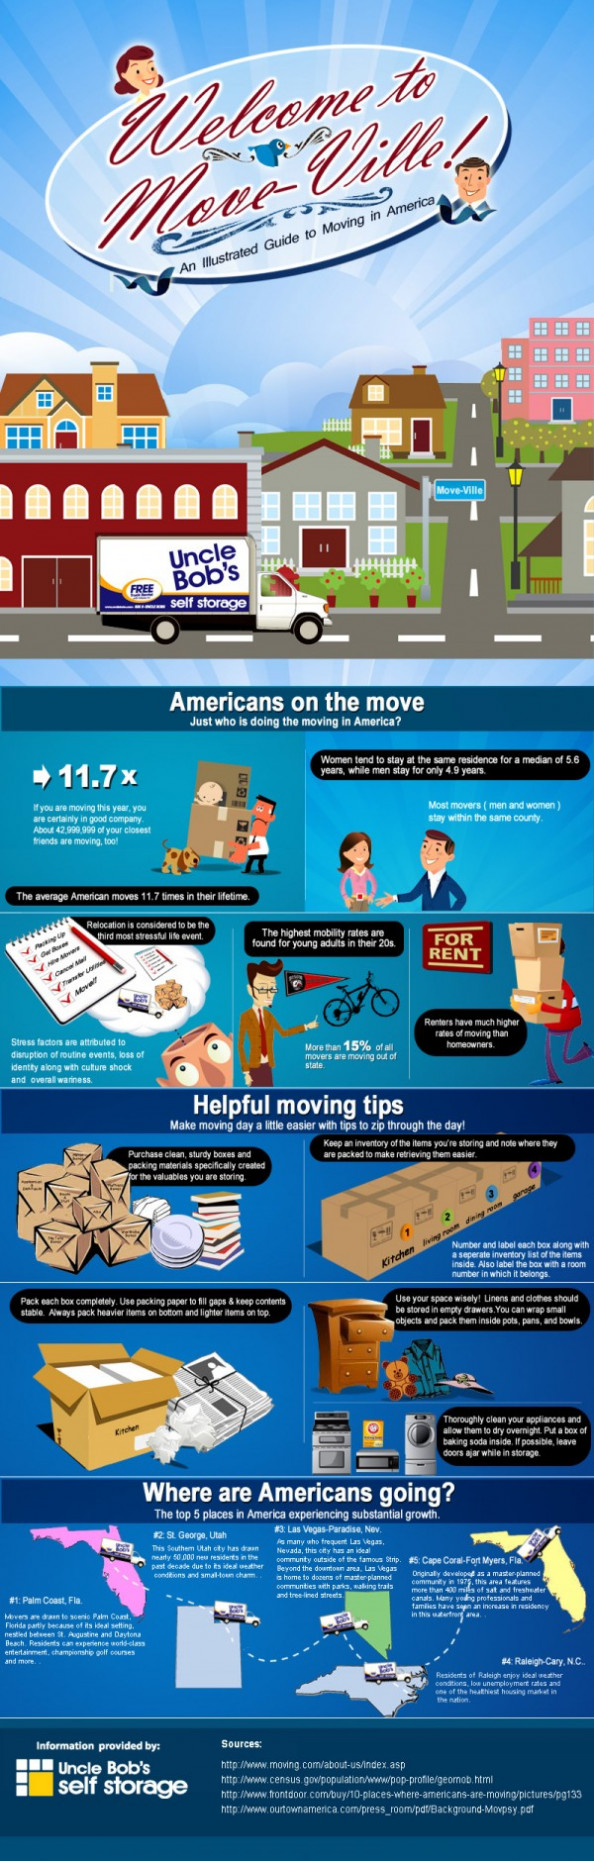 Uncle Bob's Moving Guide Infographic